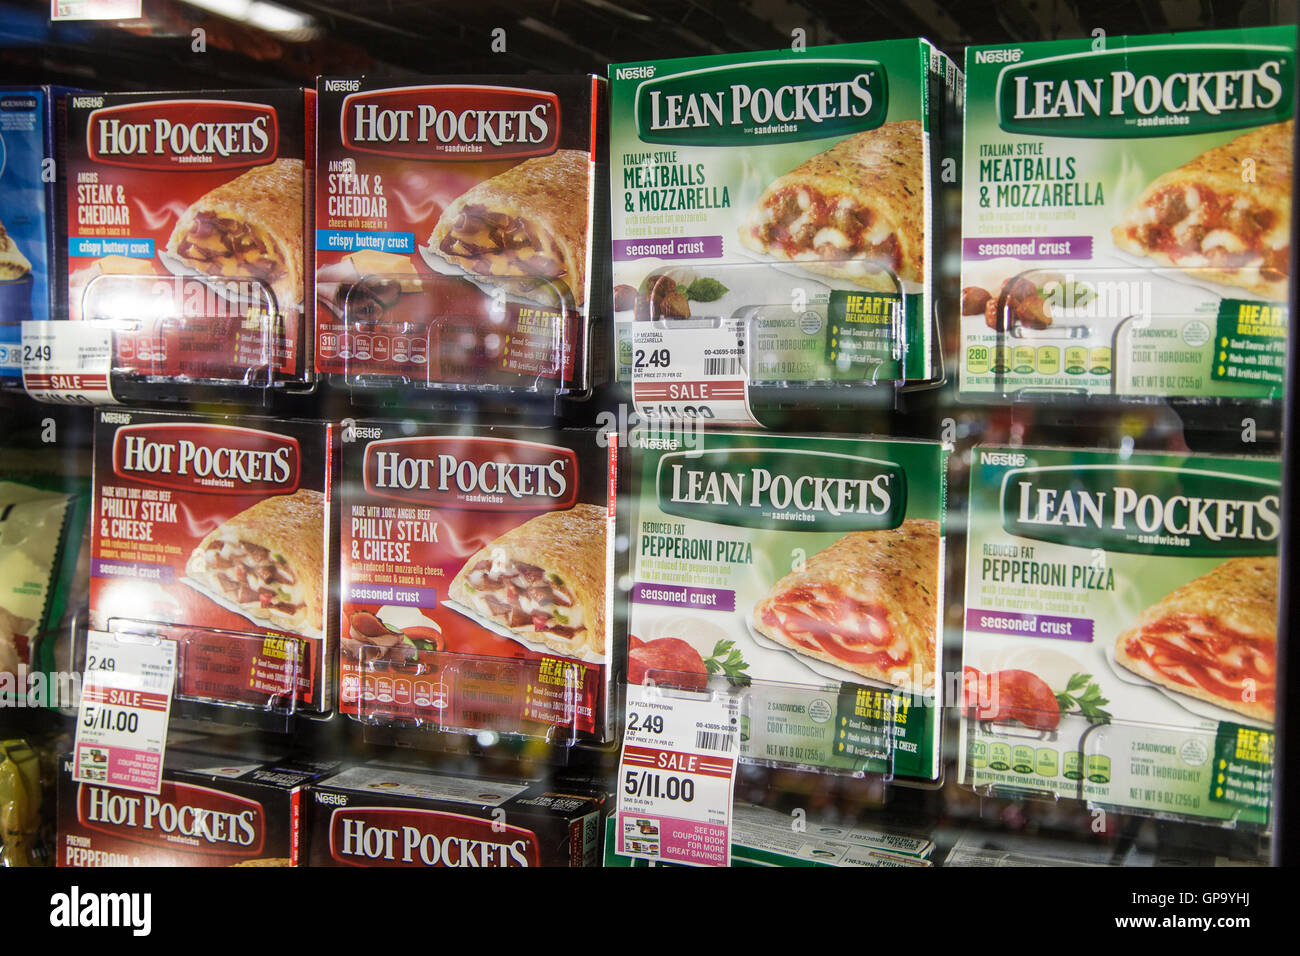 Boxes of Hot Pockets and Lean Pockets in the freezer case of a grocery store - Stock Image